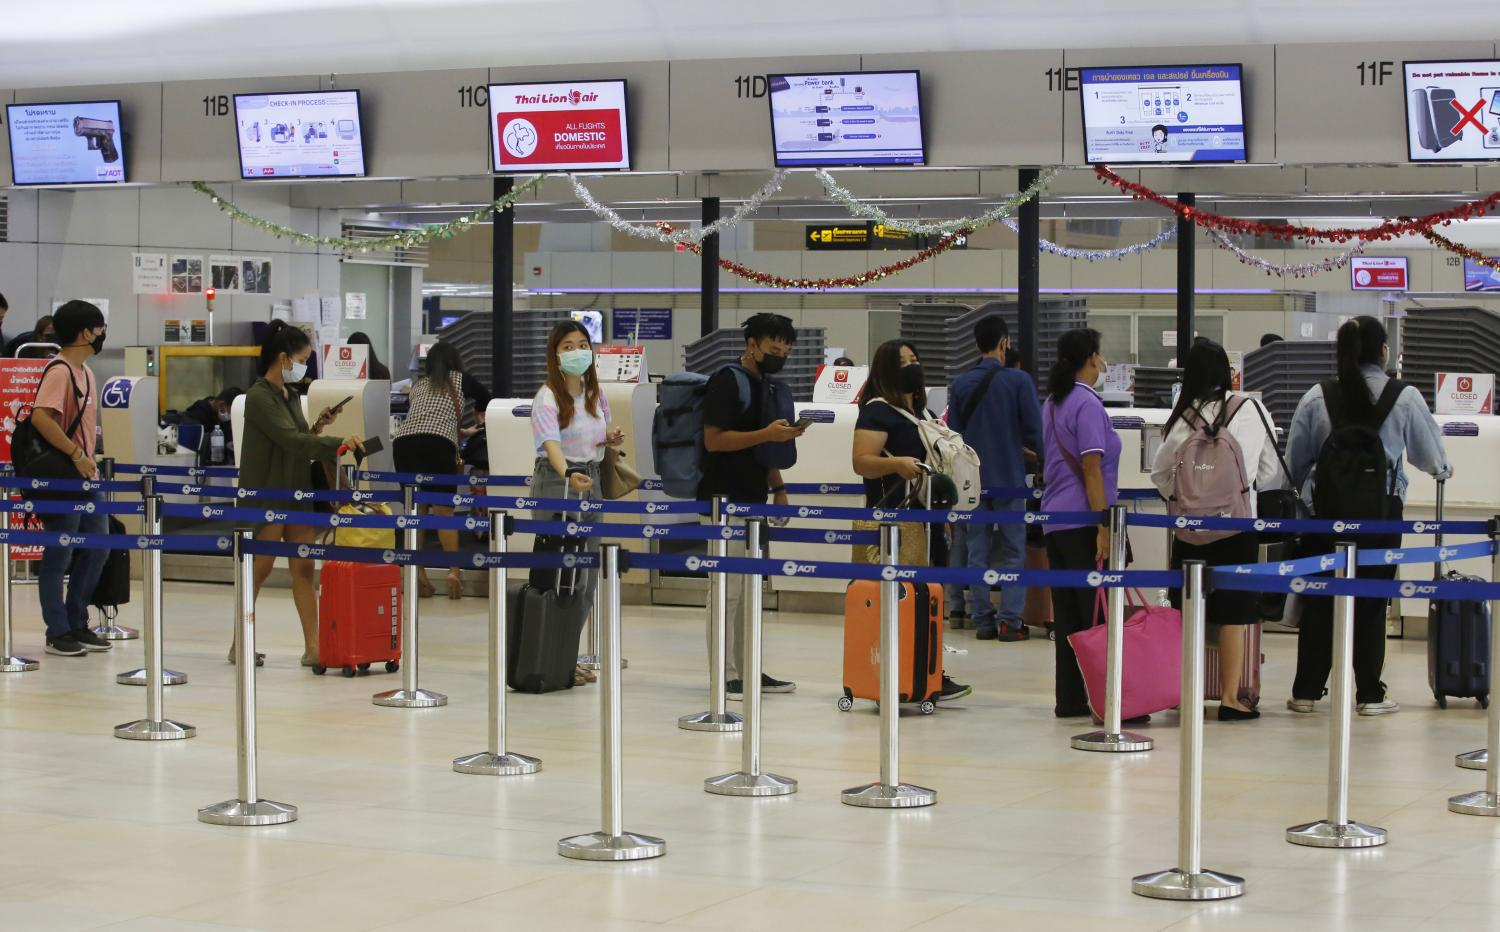 Tourists queue for check-in at Don Mueang airport.